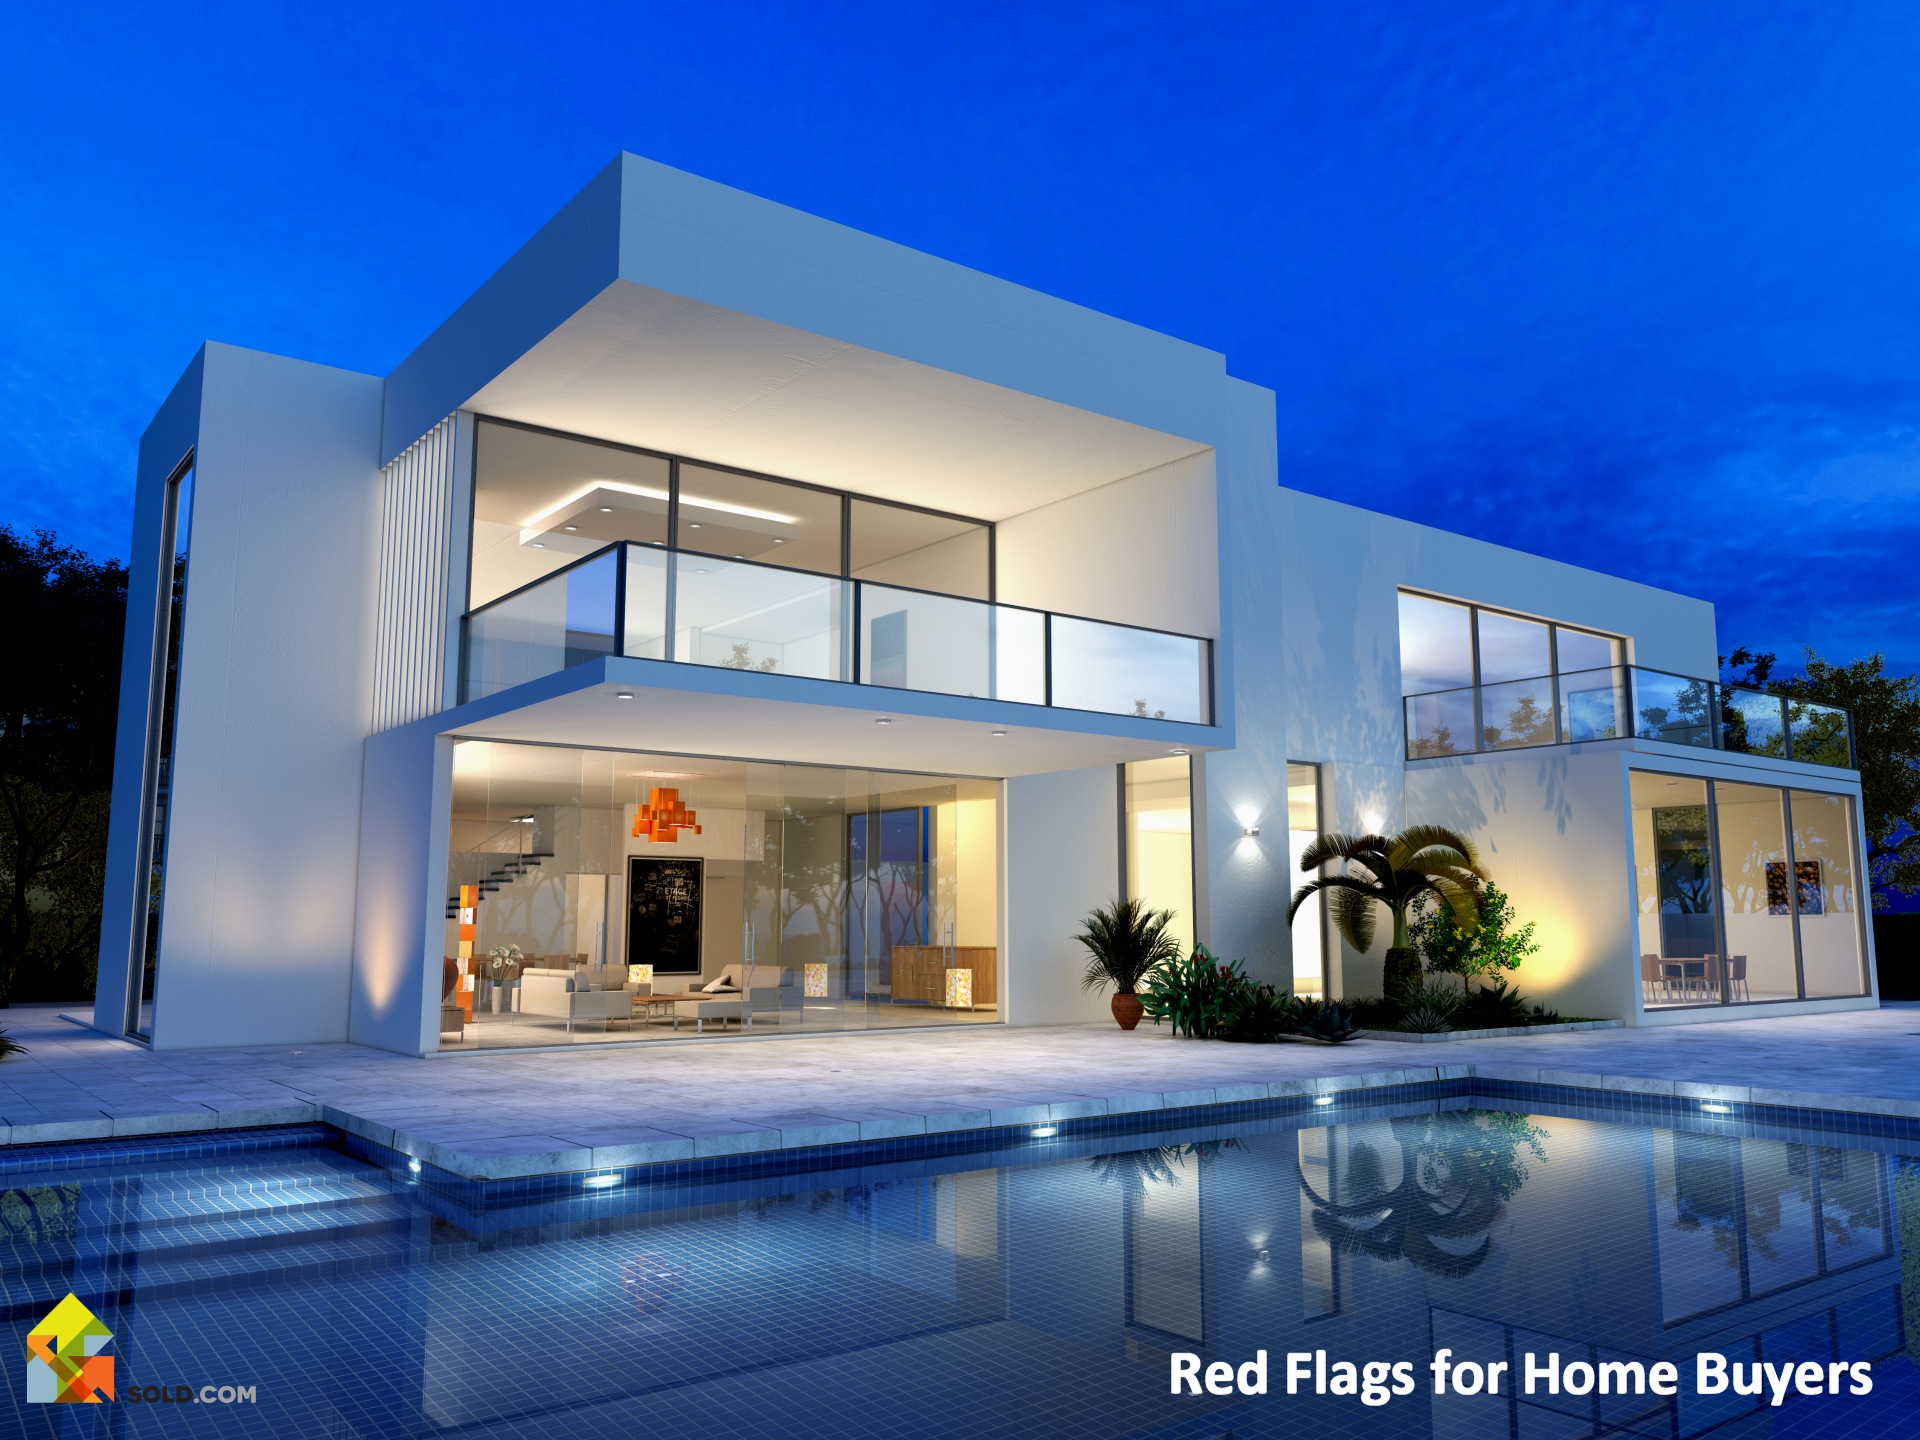 Red Flags for Home Buyers